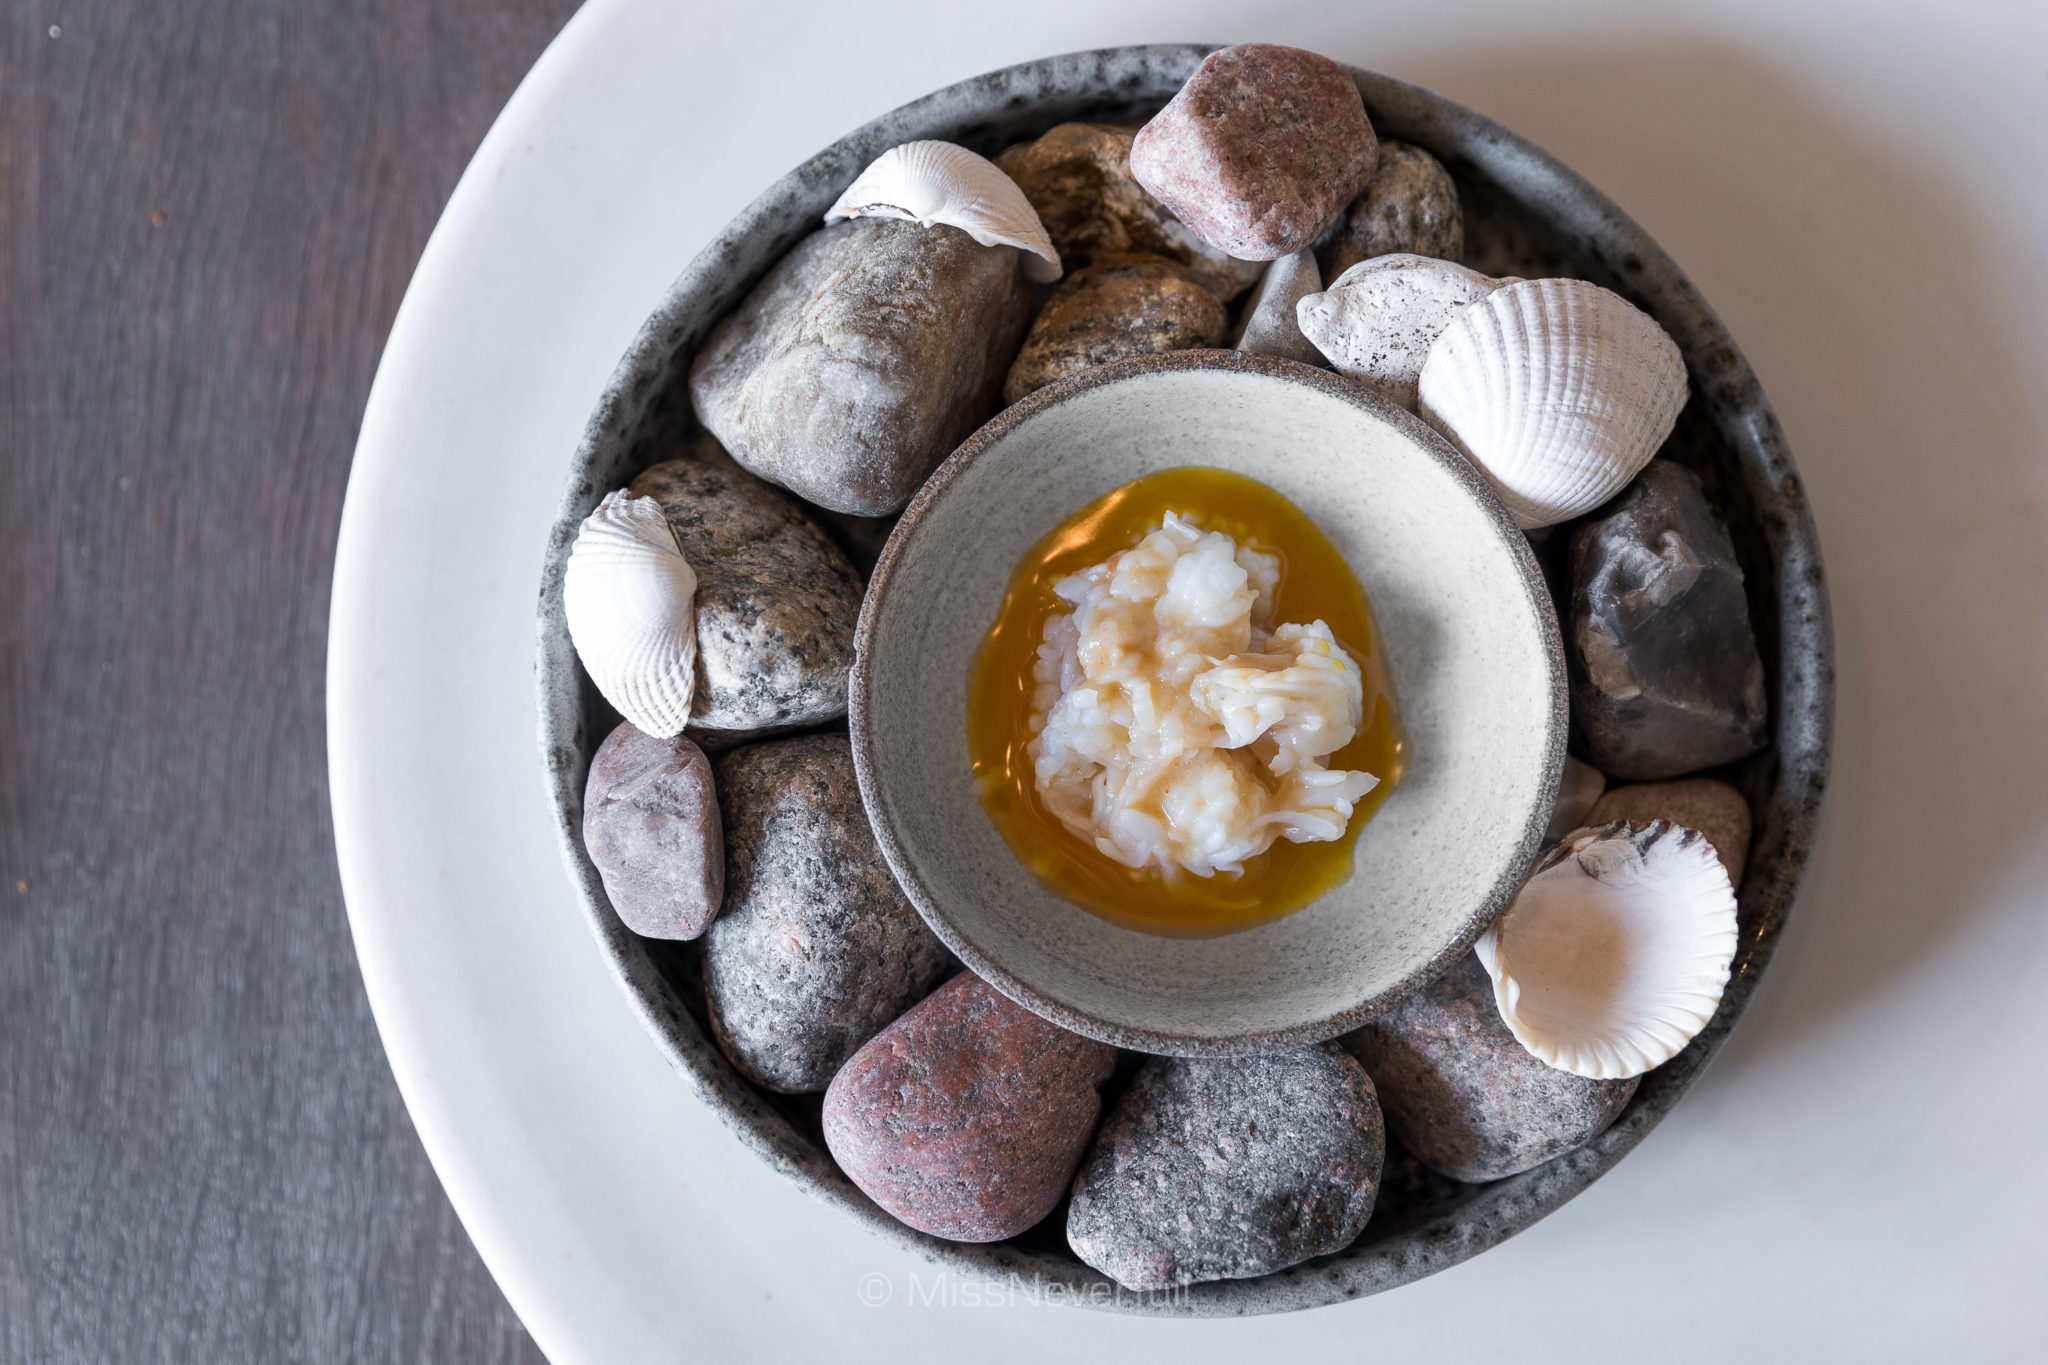 10. Steamed king crab and egg yolk sauce